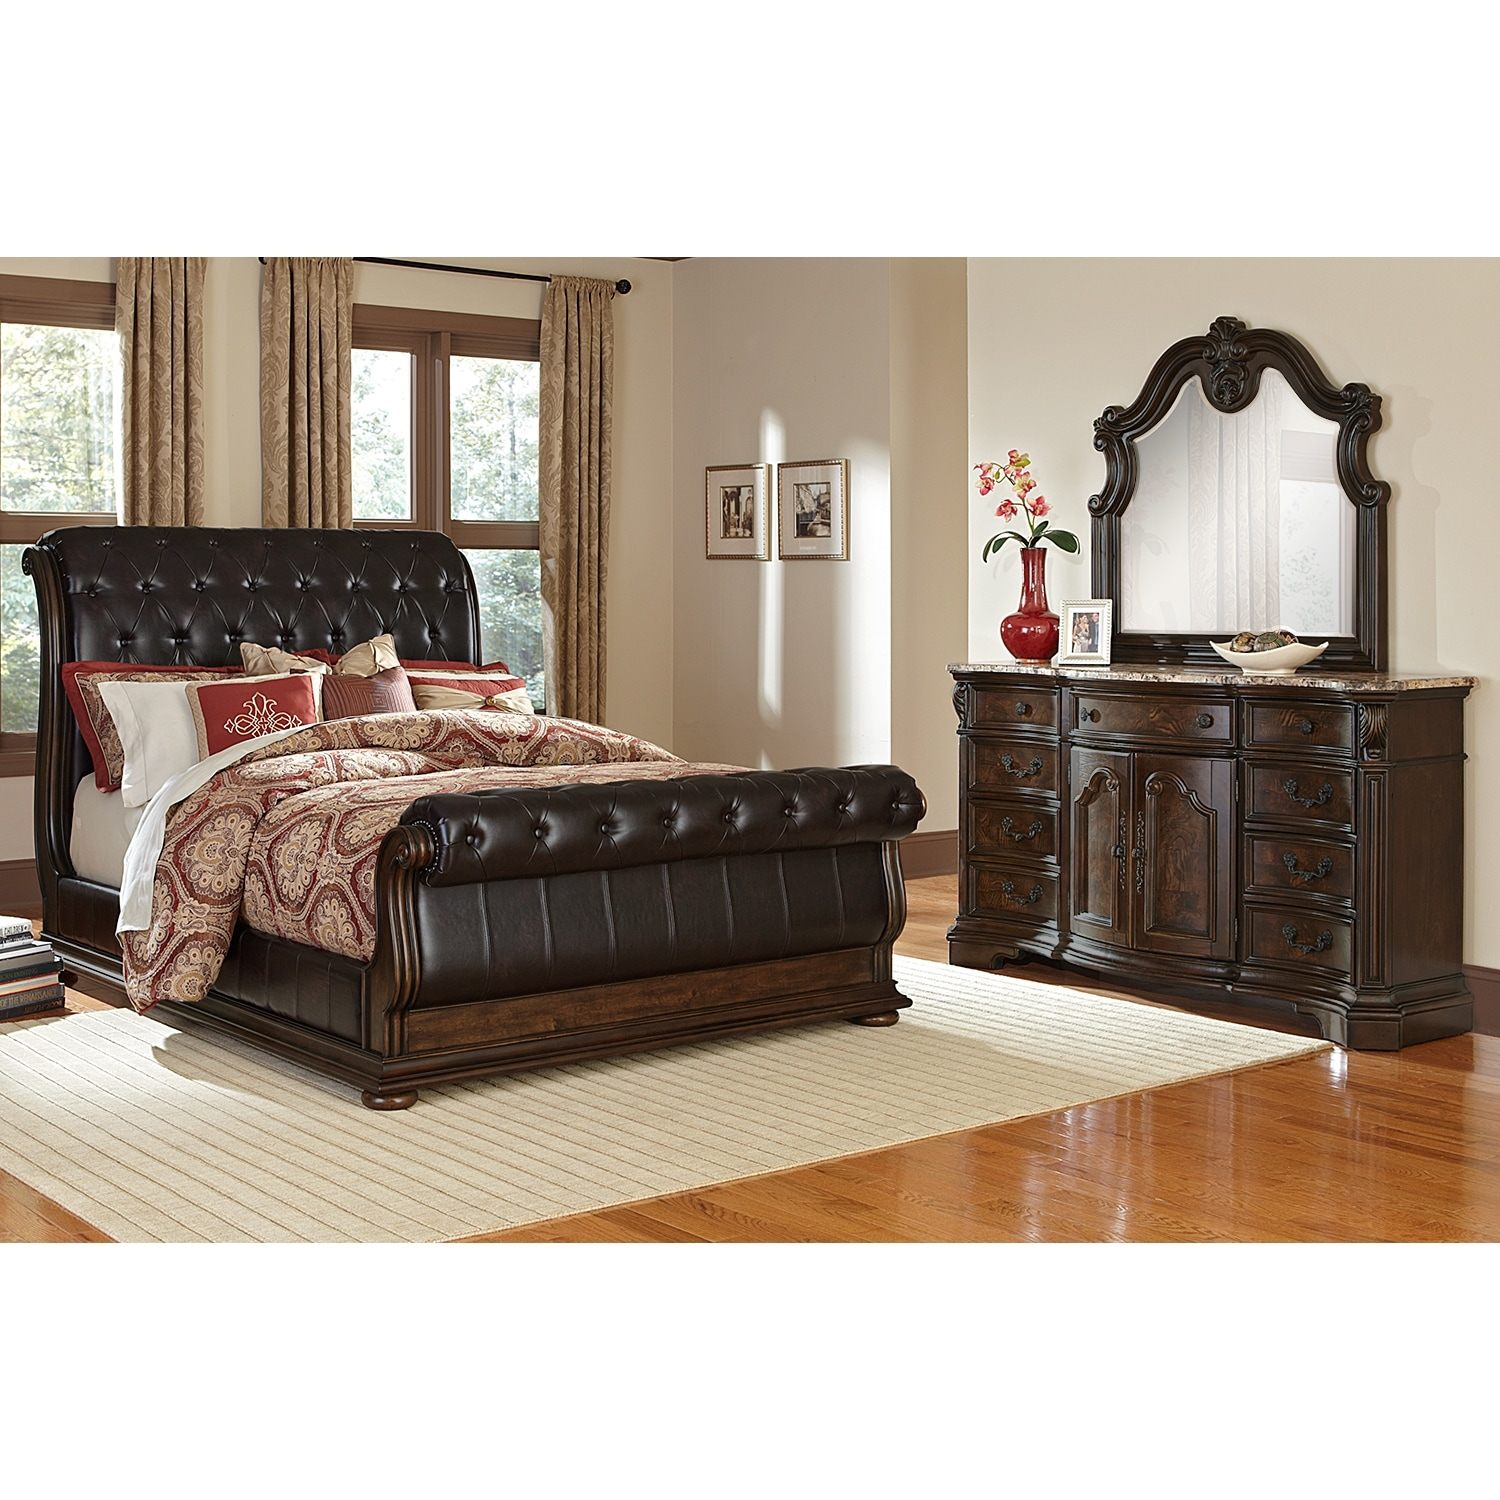 monticello 5 piece king sleigh bedroom set pecan american signature furniture. Black Bedroom Furniture Sets. Home Design Ideas